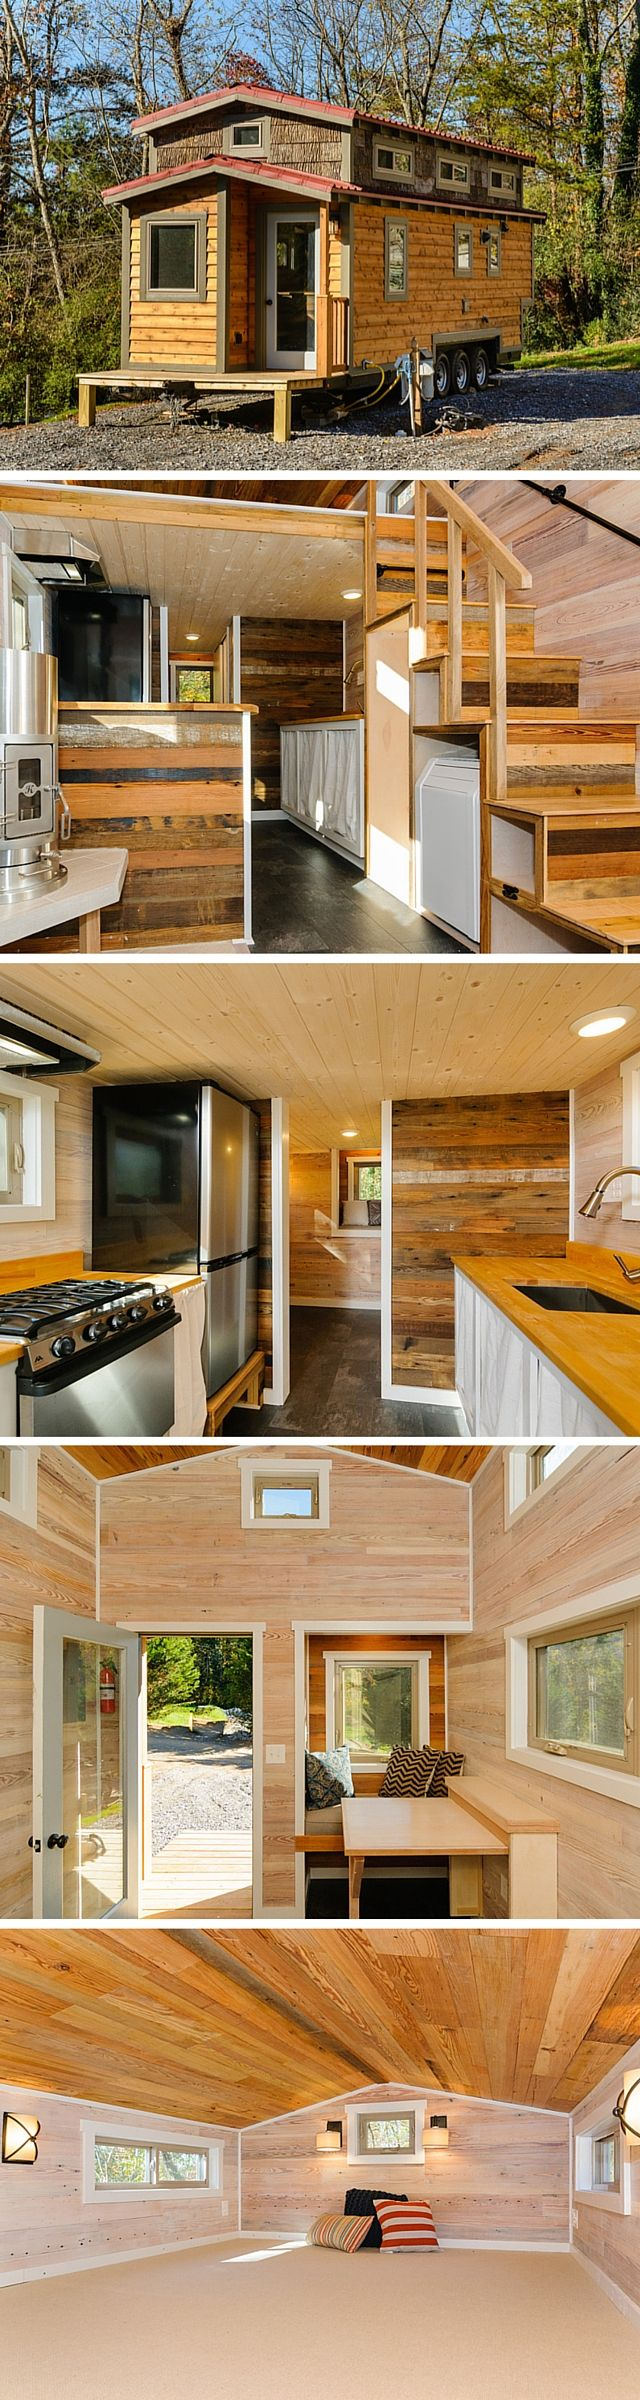 top 25 best tiny house on wheels stairs ideas on pinterest tiny the mh tiny house from wishbone tiny homes a 240 sq ft home on wheels